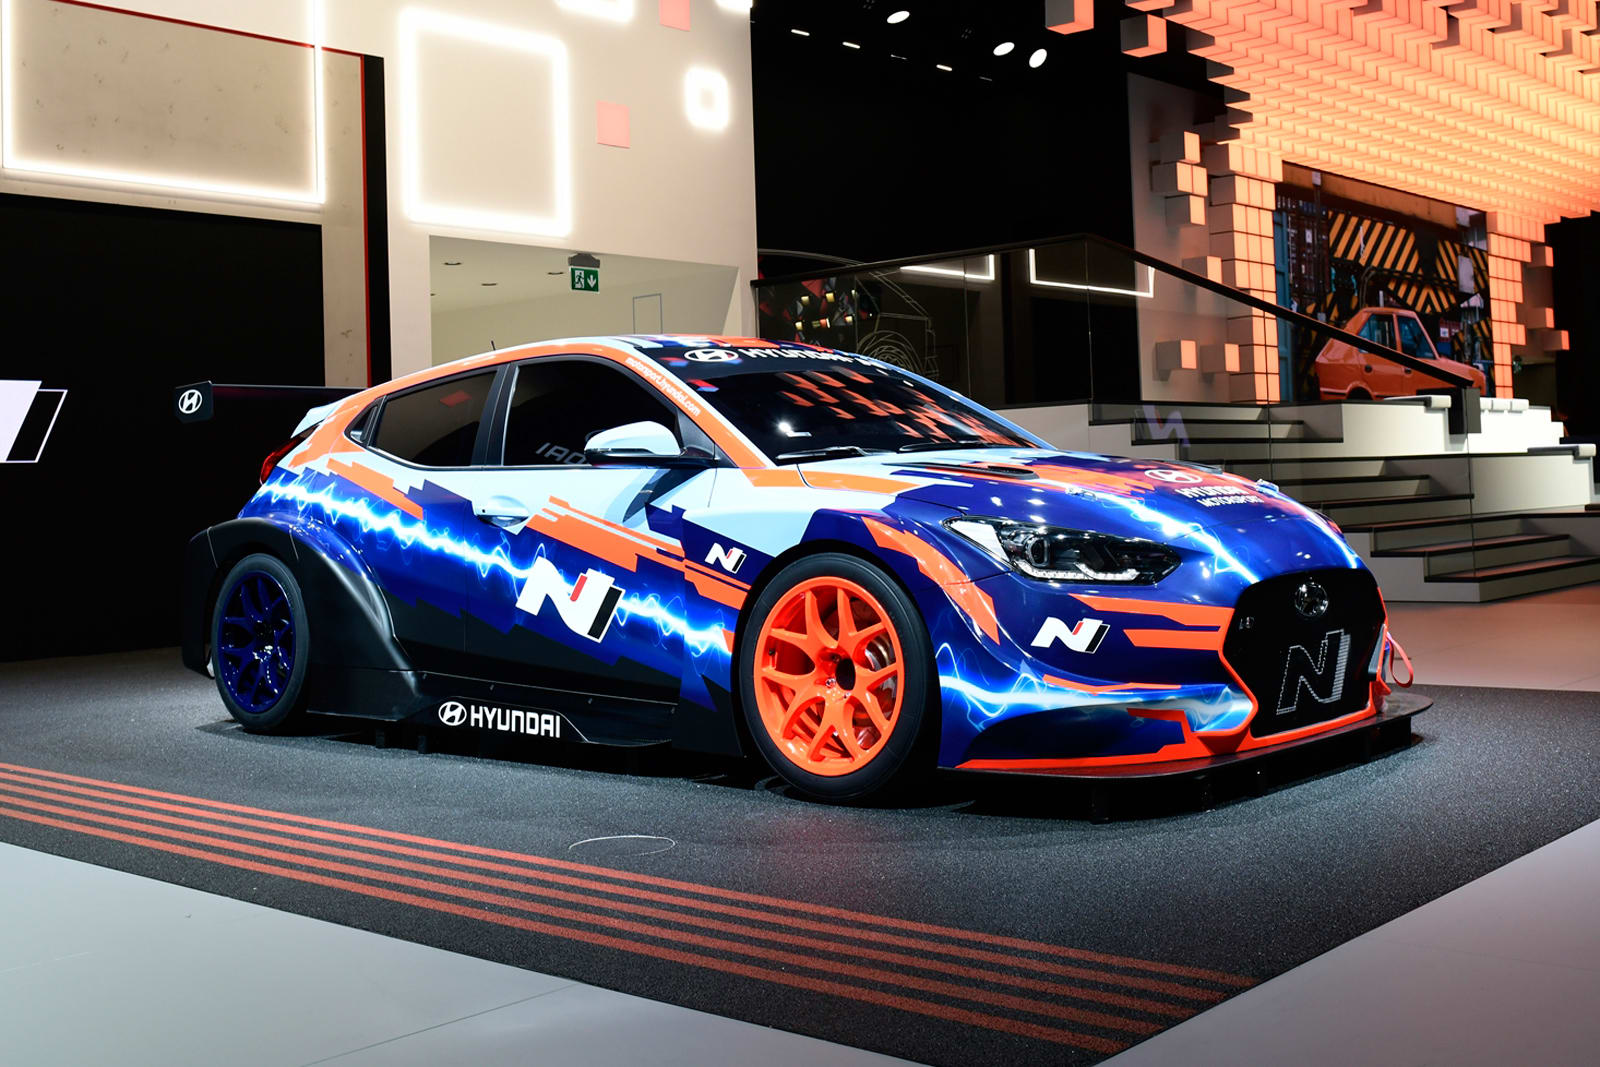 Hyundai's first electric race car is a souped-up Veloster